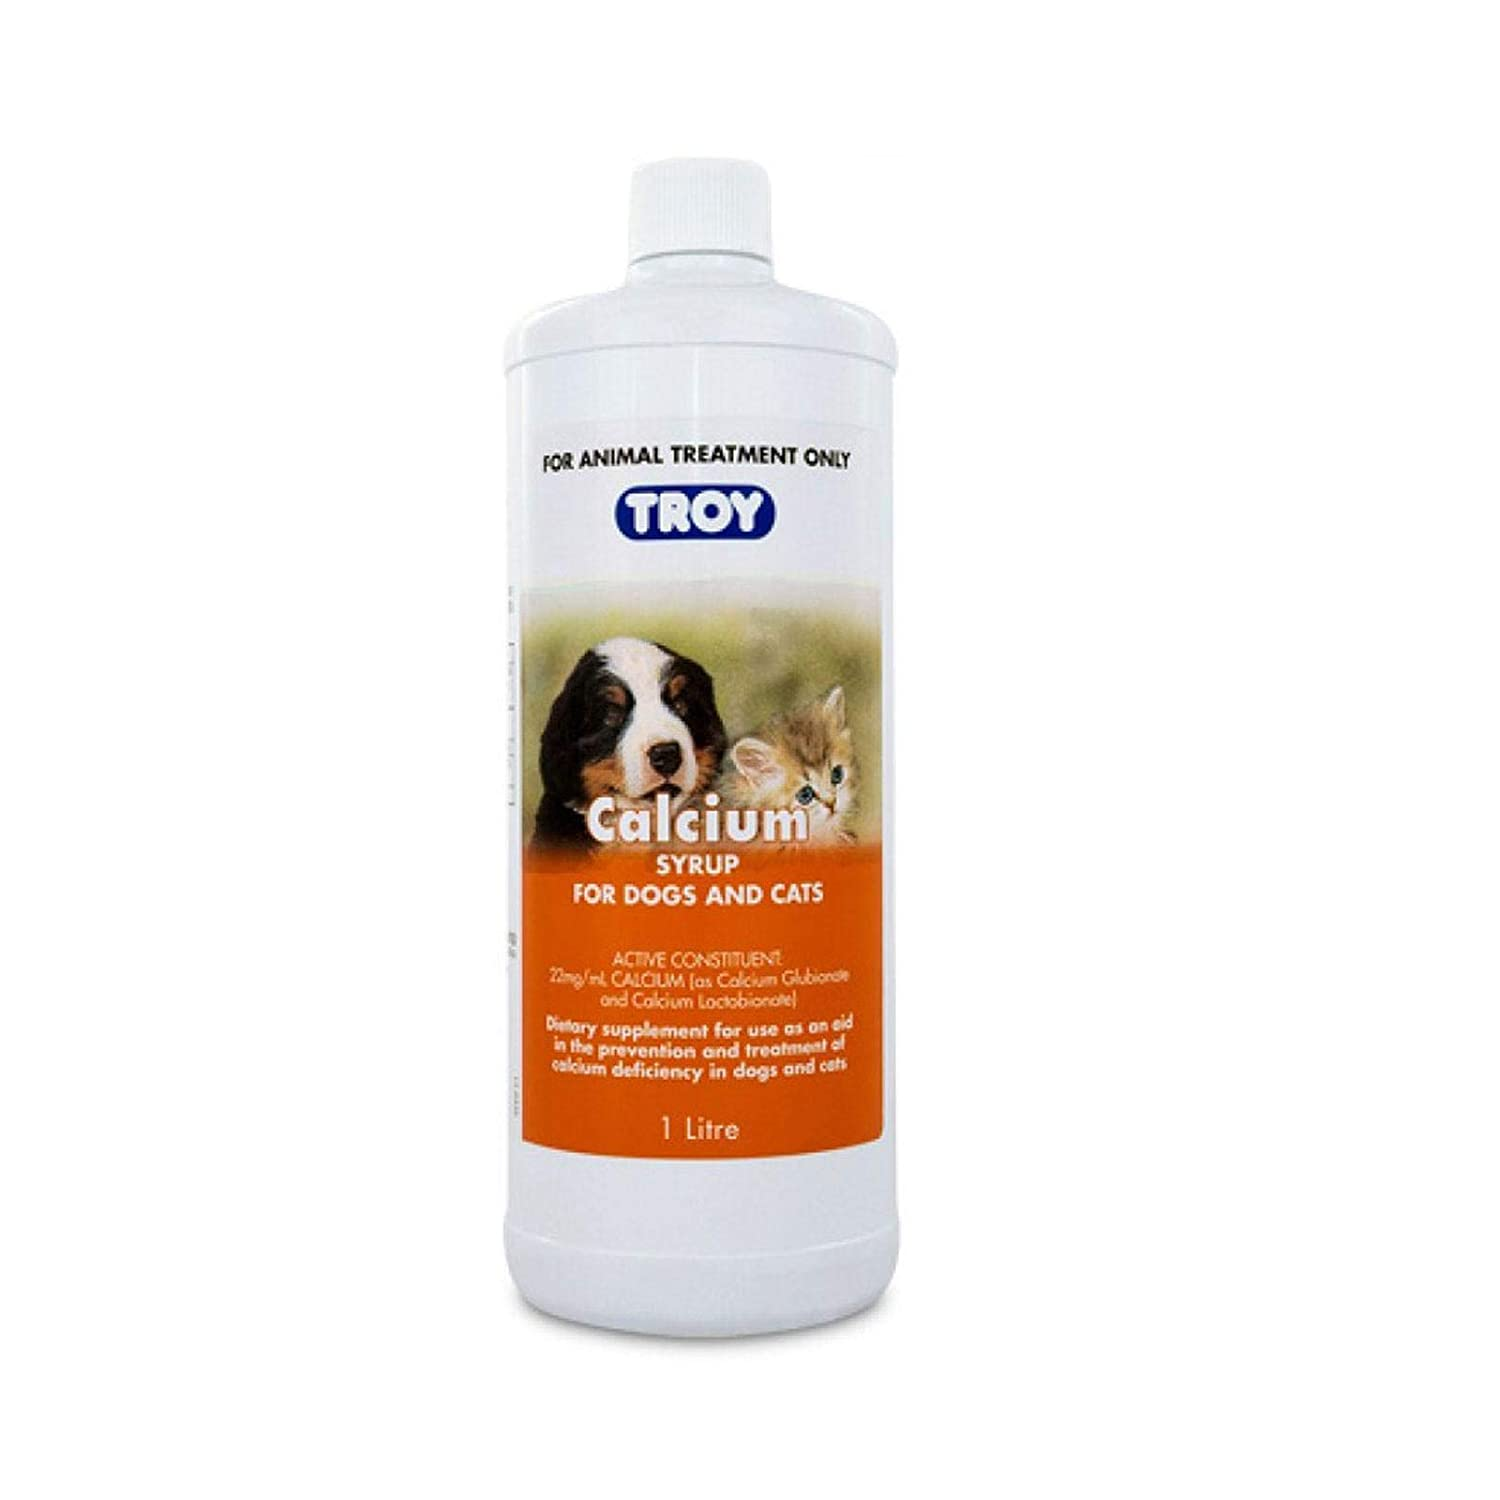 TROY Calcium Syrup 1L (T3870)